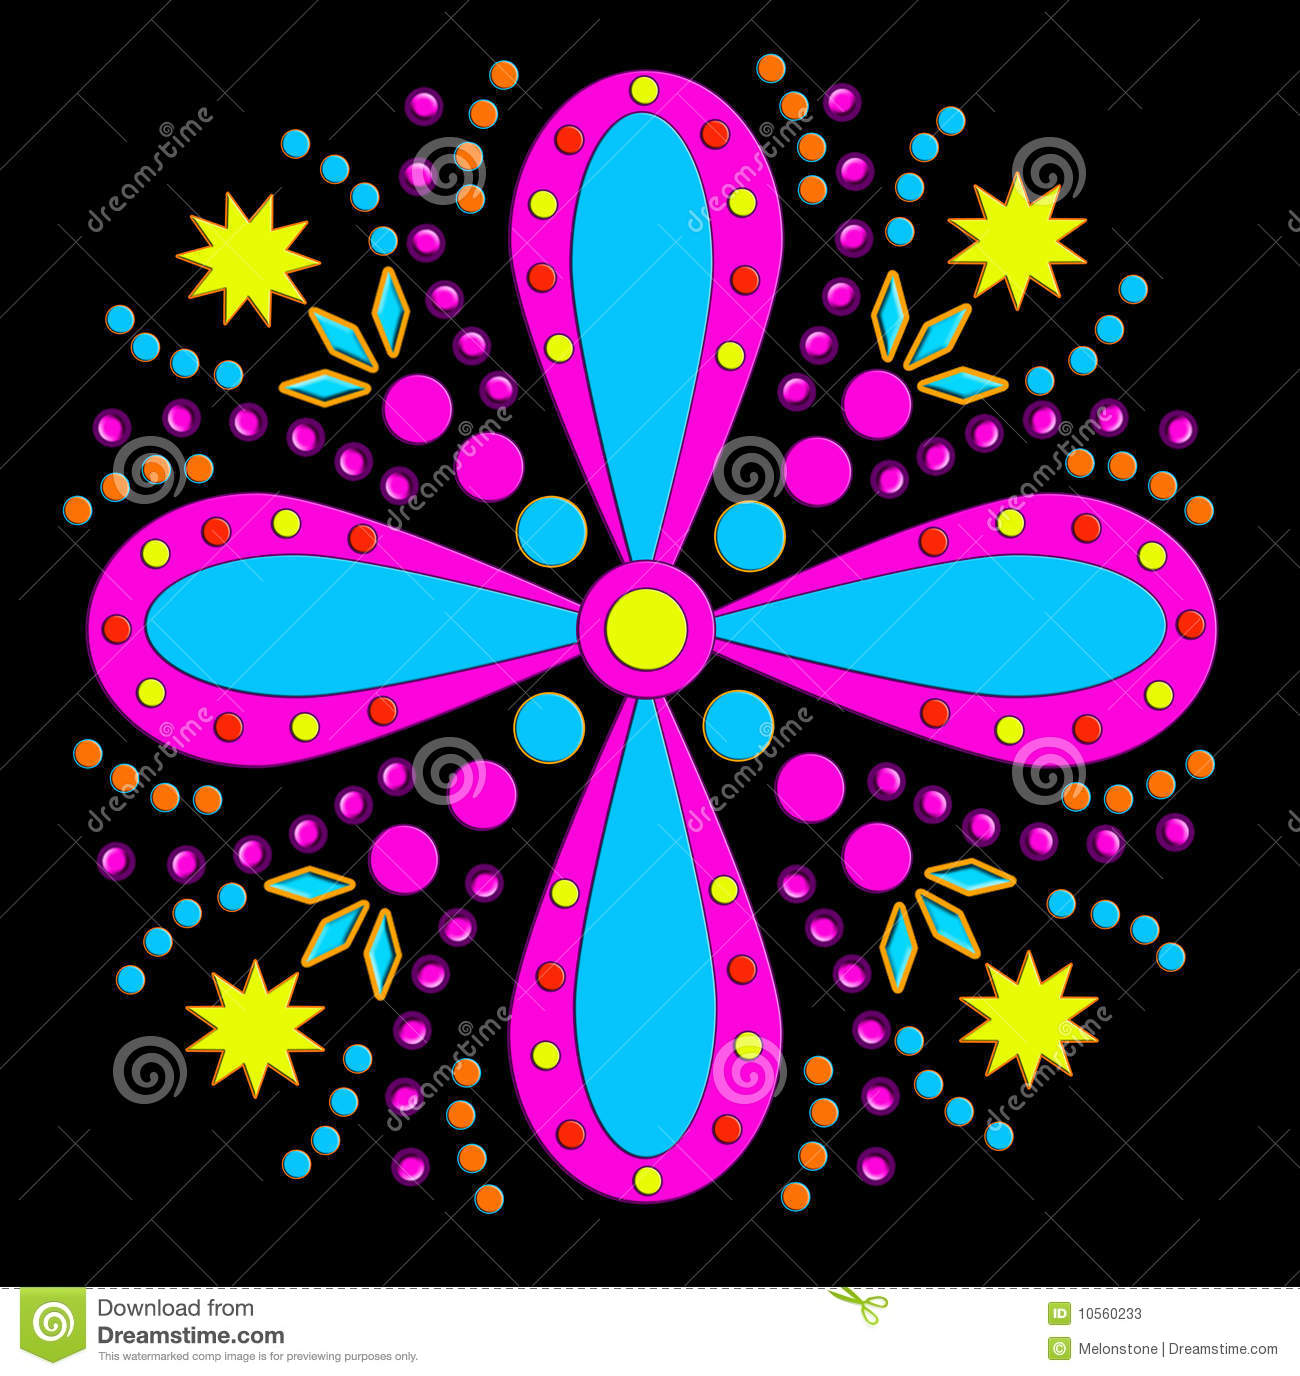 Funky floral clipart.